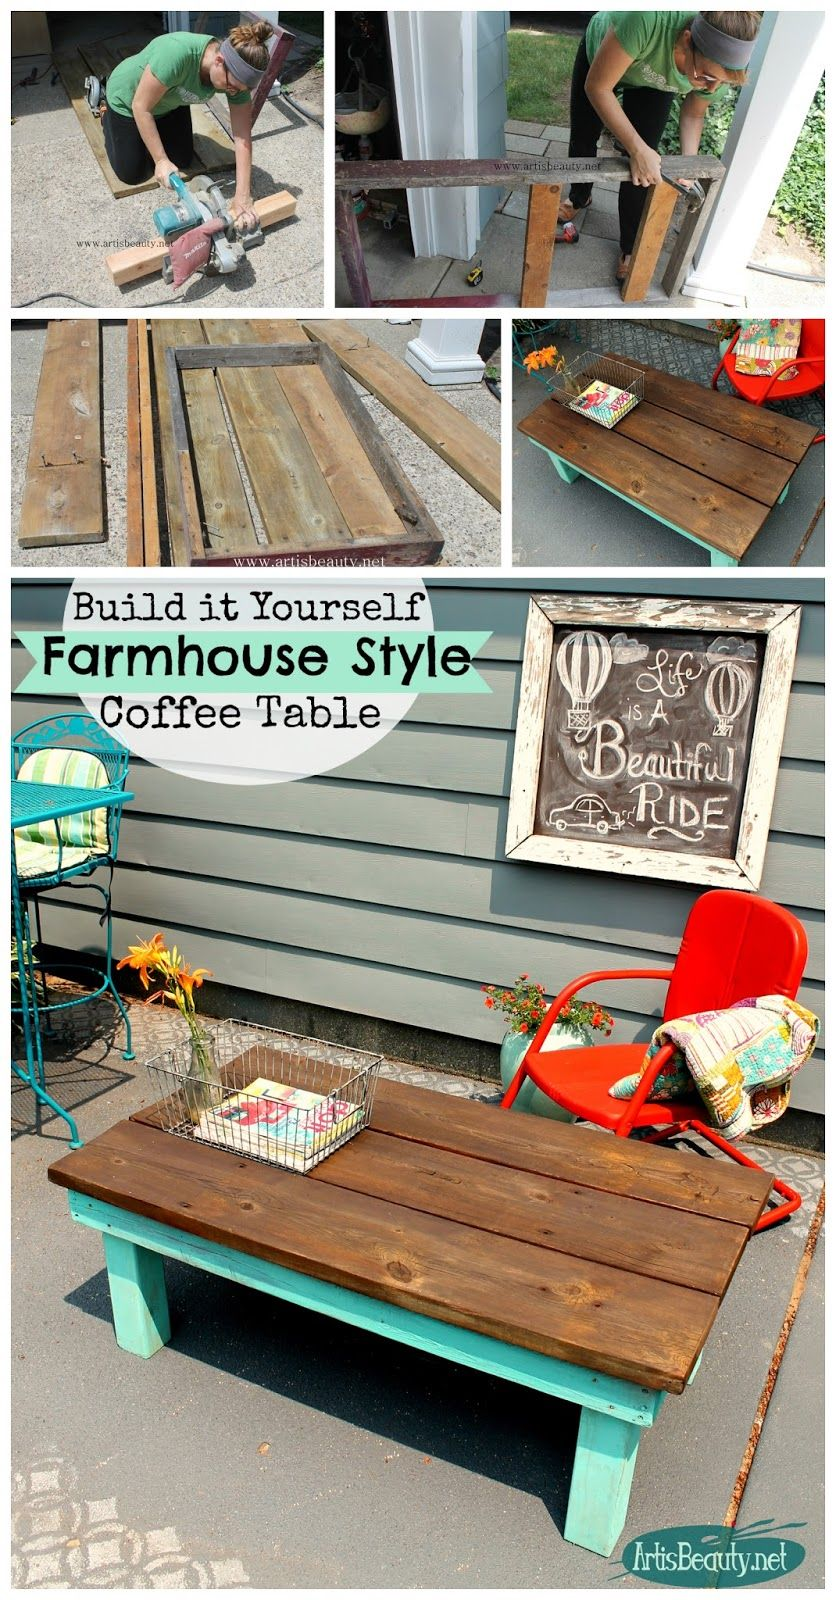 Photo of DIY build it yourself Vintage Farmhouse Style Coffee Table from Rescued Lumber.